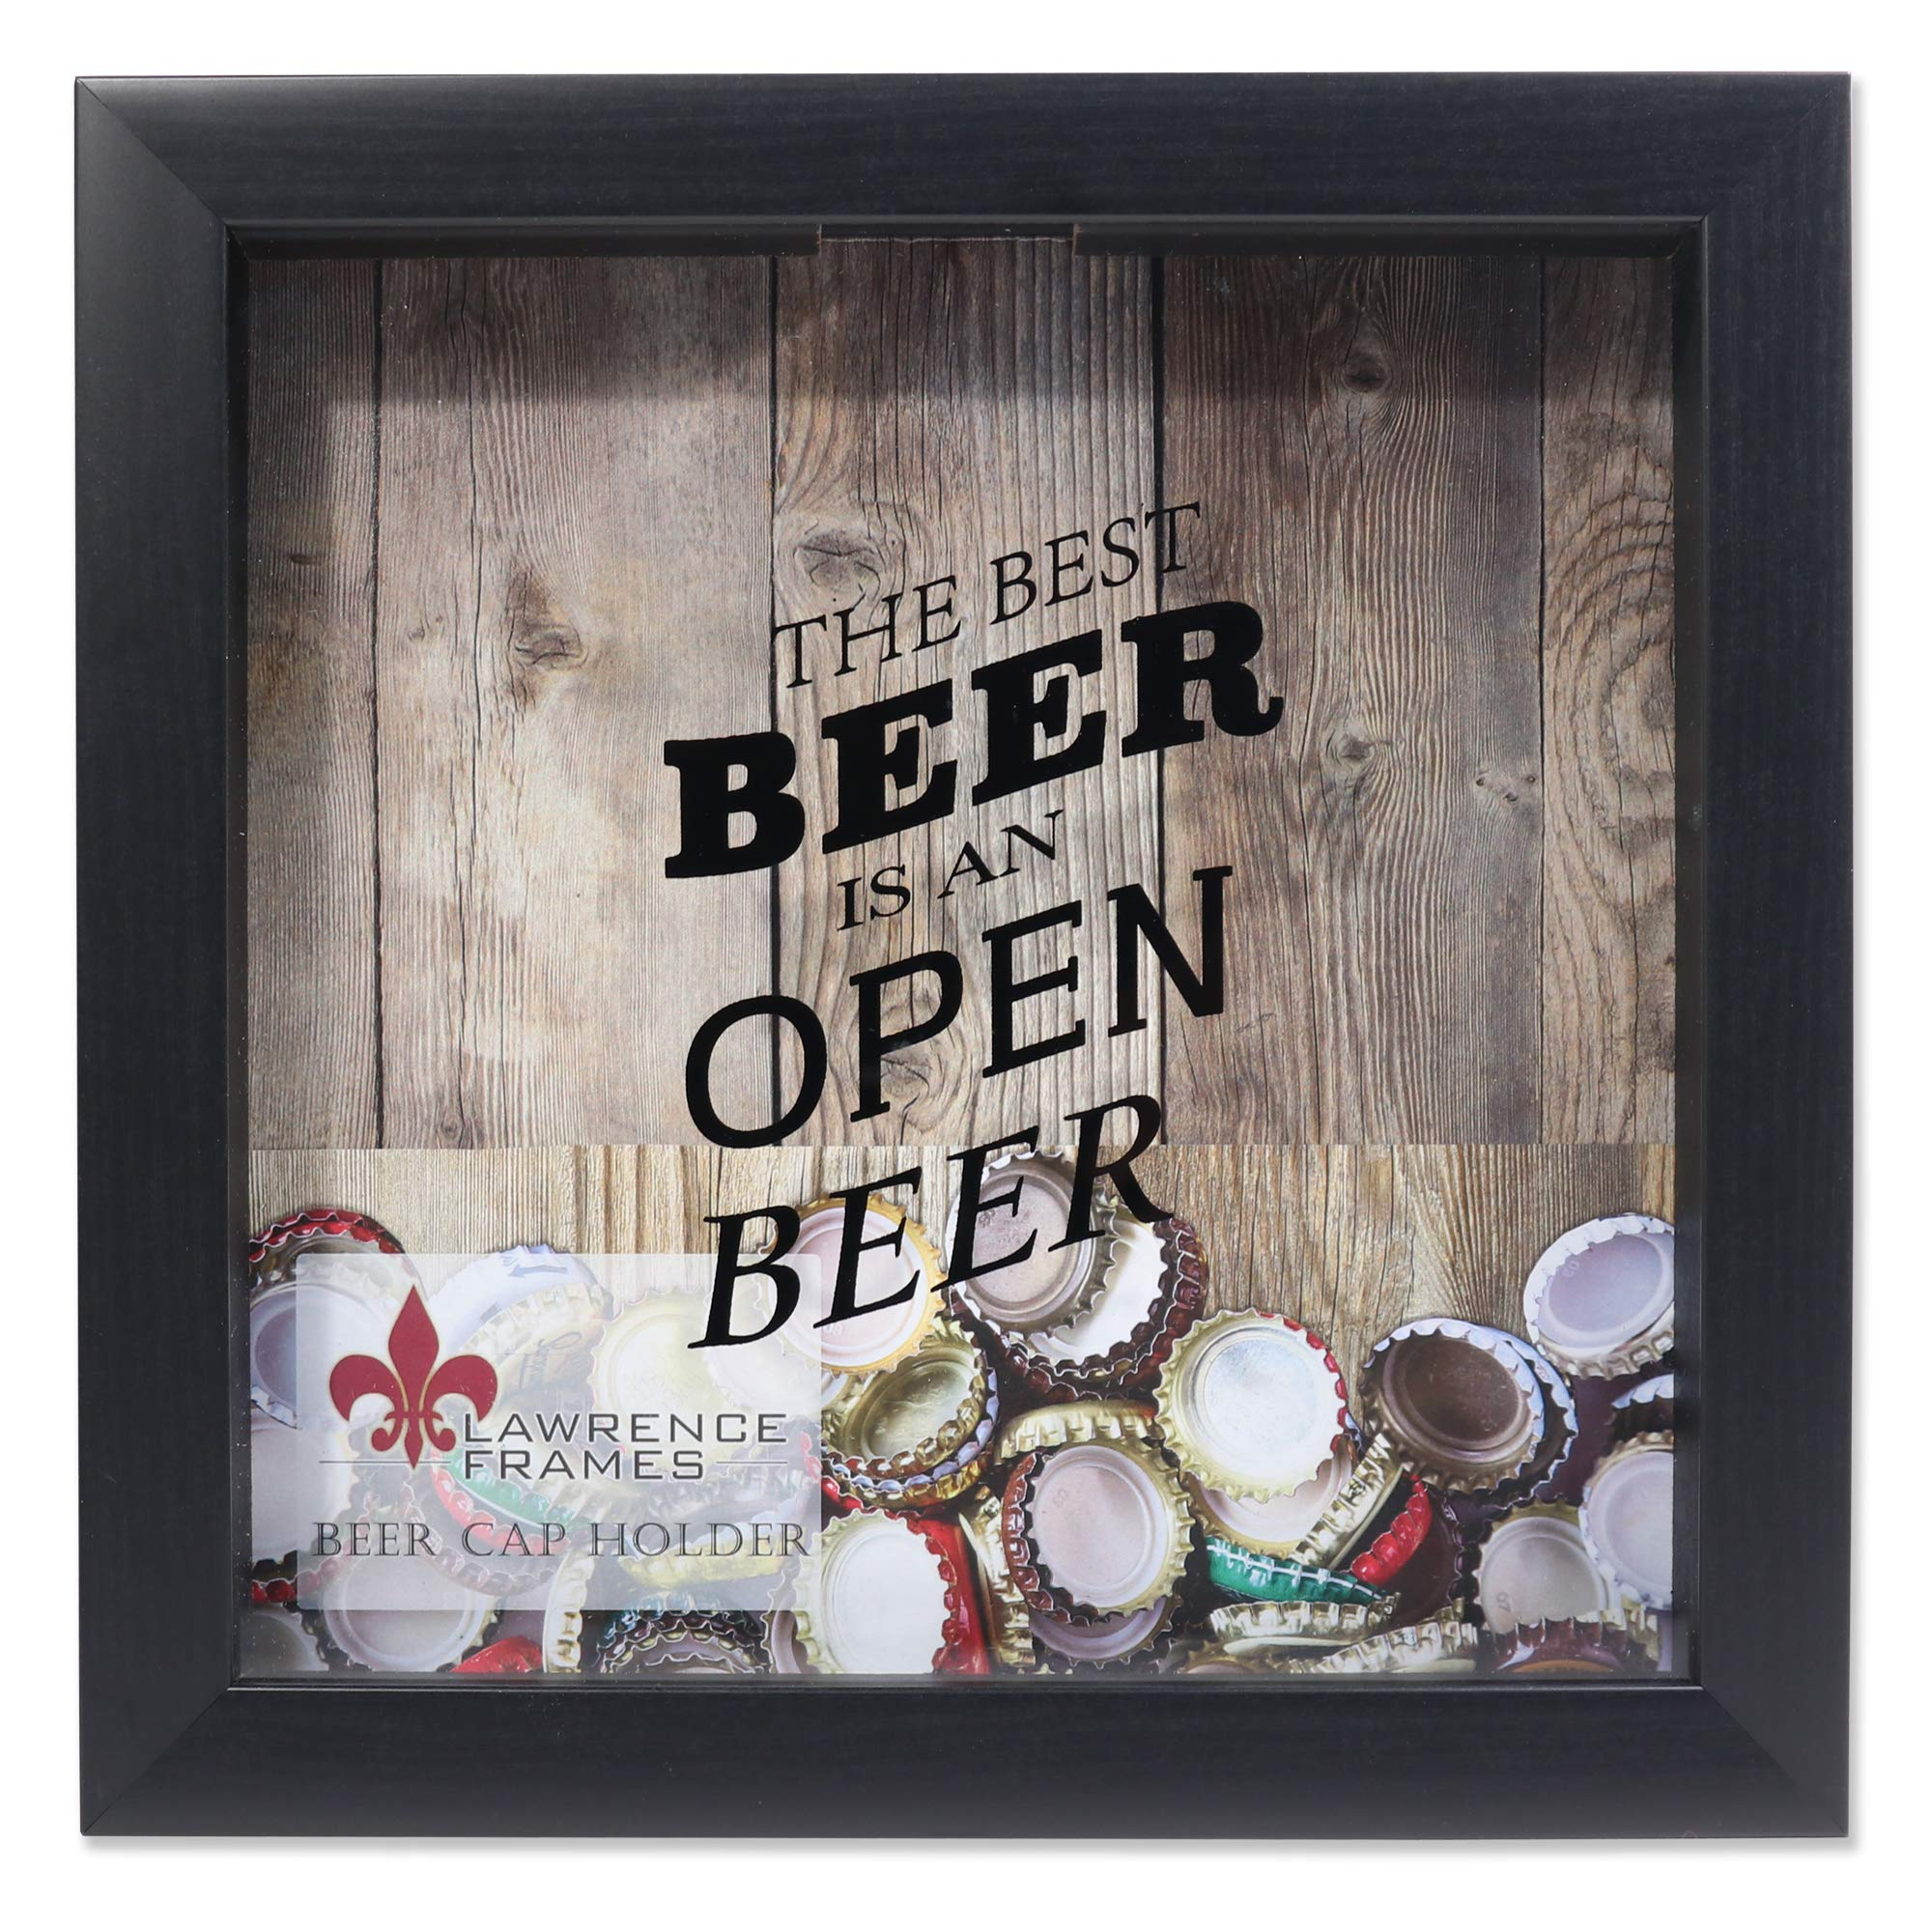 Lawrence Frames 10x10 Black Beer Cap Holder Shadow Box, by Lawrence Frames